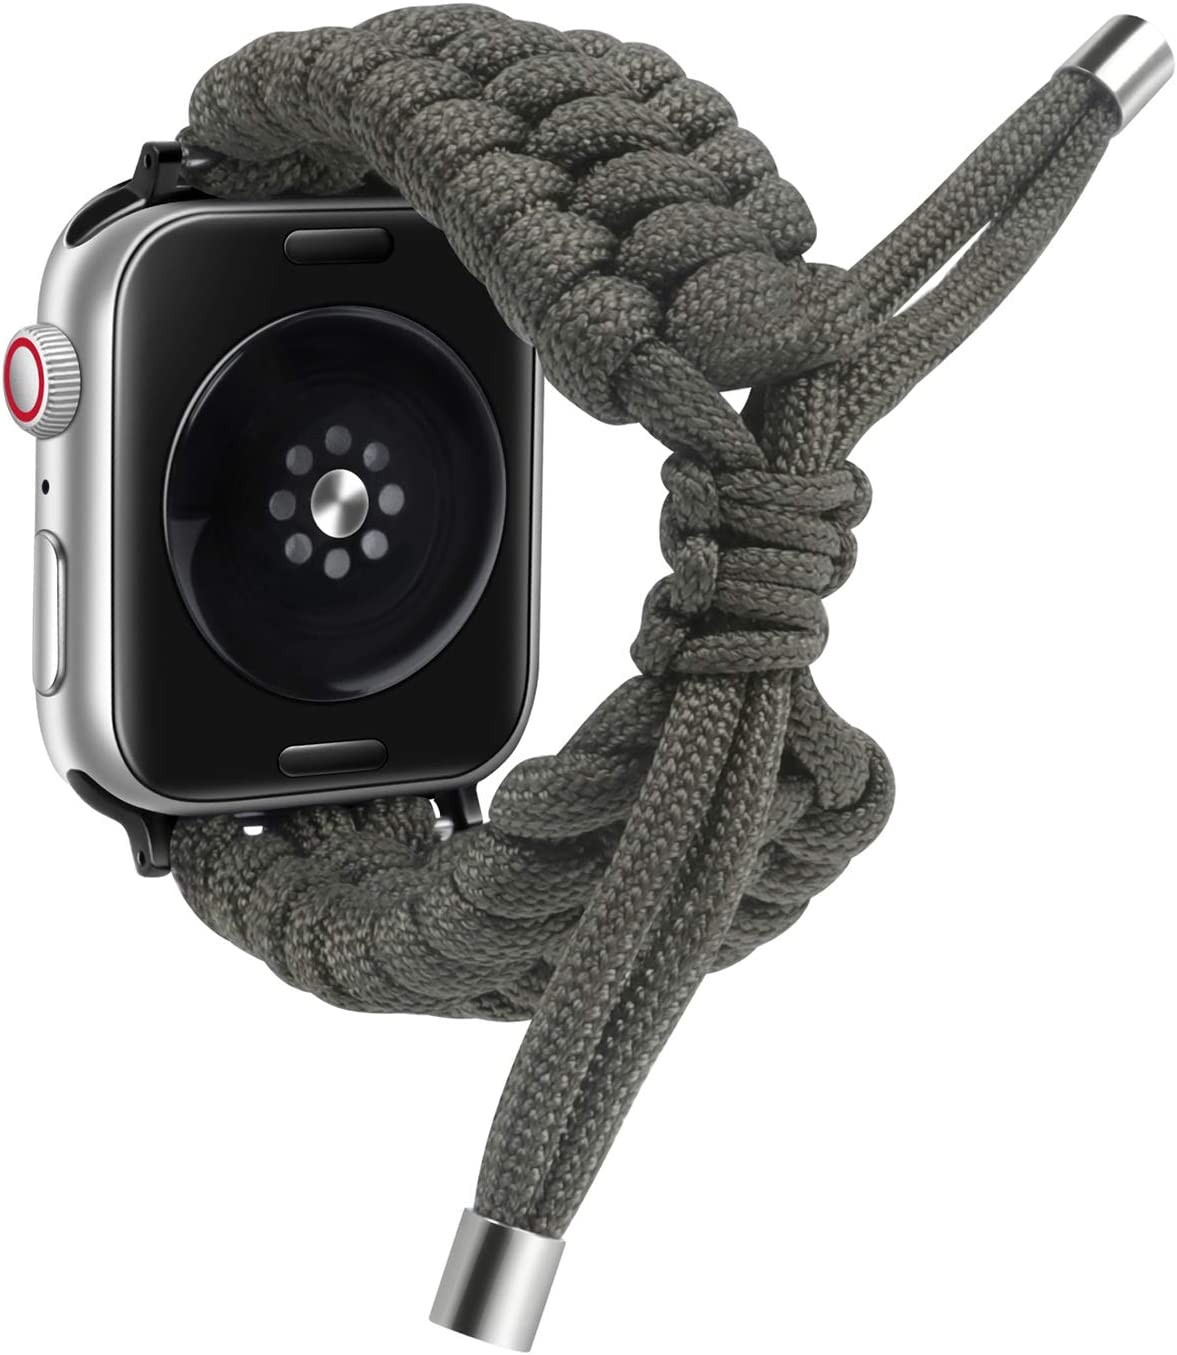 dkplnt Nyloncompatible 38mm 40mm AppleWatchBand Green Paracord Adjustable Woven Strap for iwatch Series 6/5/4/3/2/1 Replacement Wristband